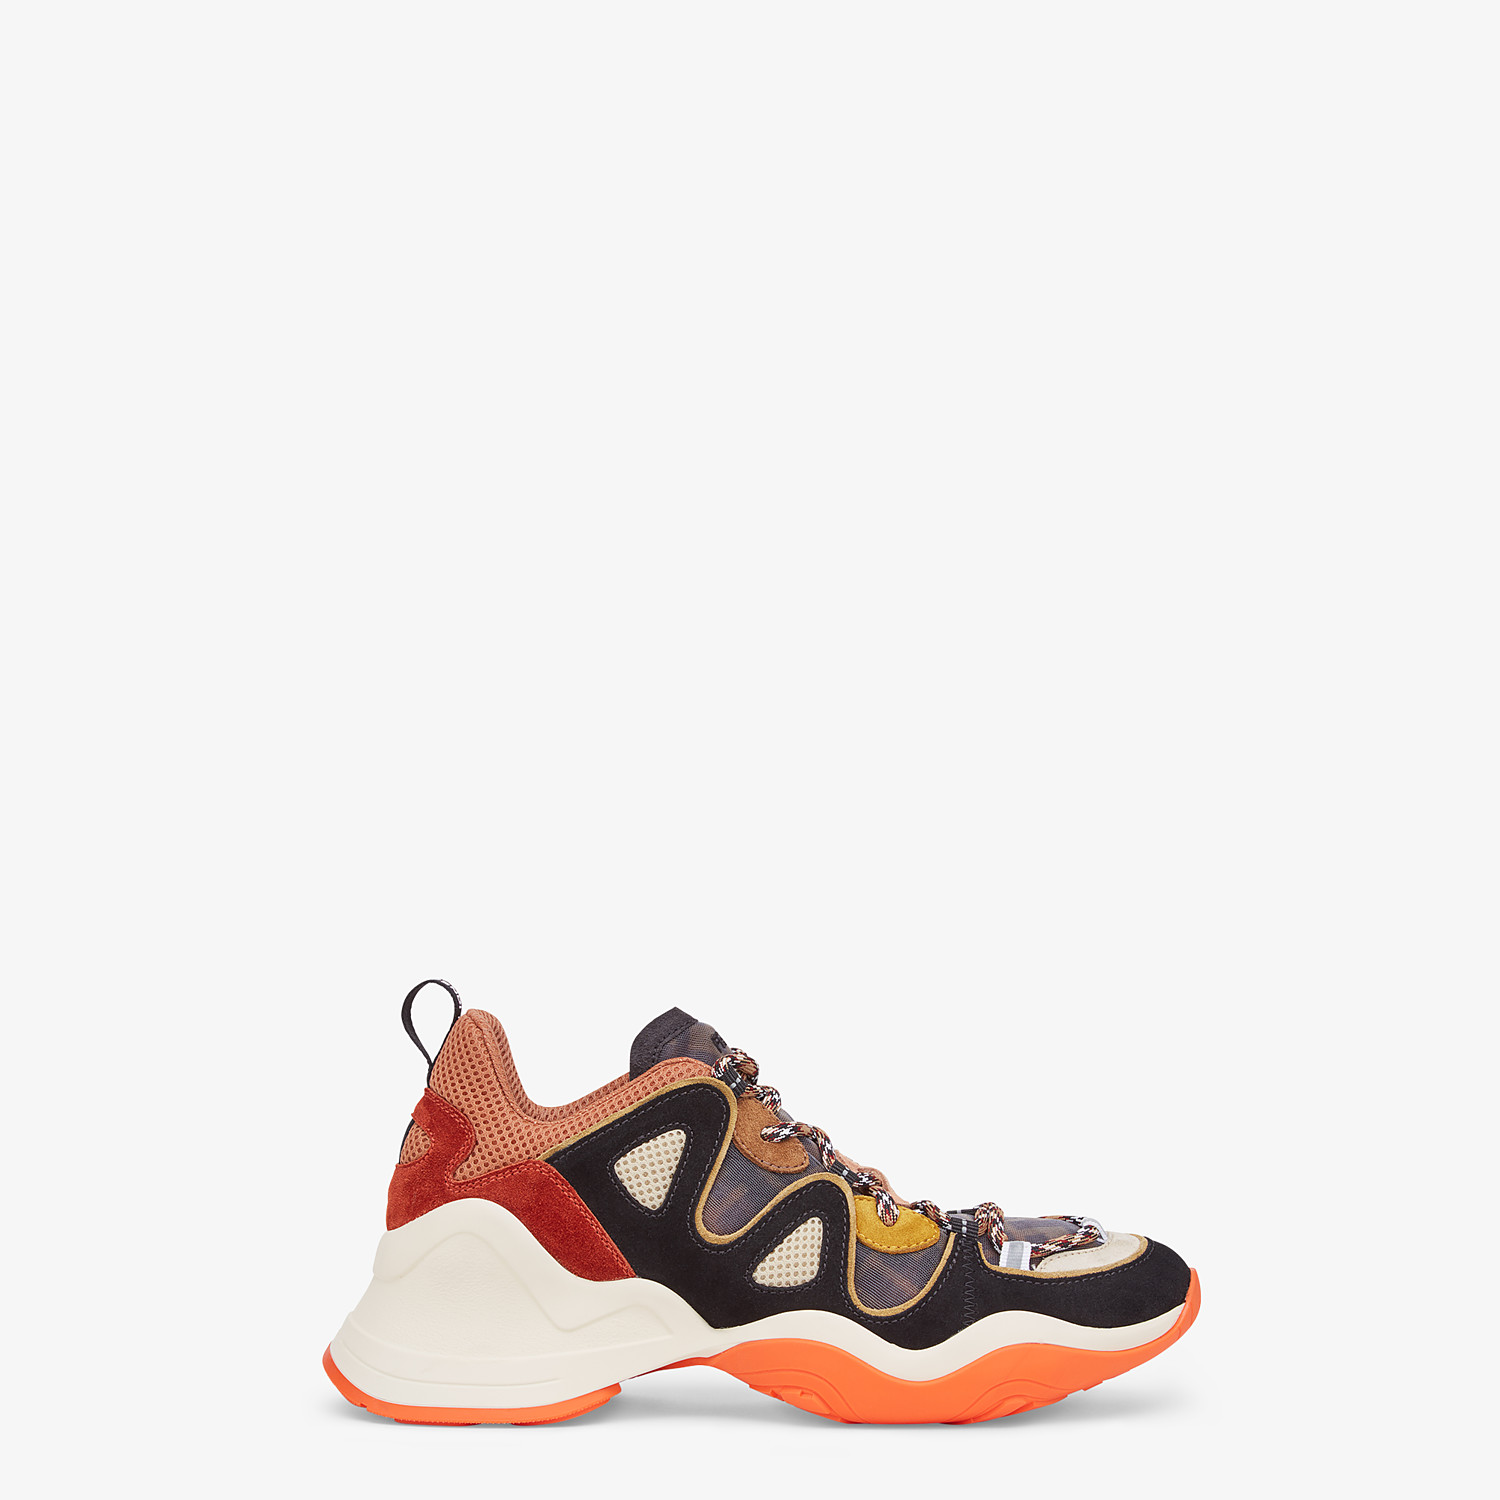 FENDI SNEAKERS - Multicolour suede and tech mesh sneakers - view 1 detail